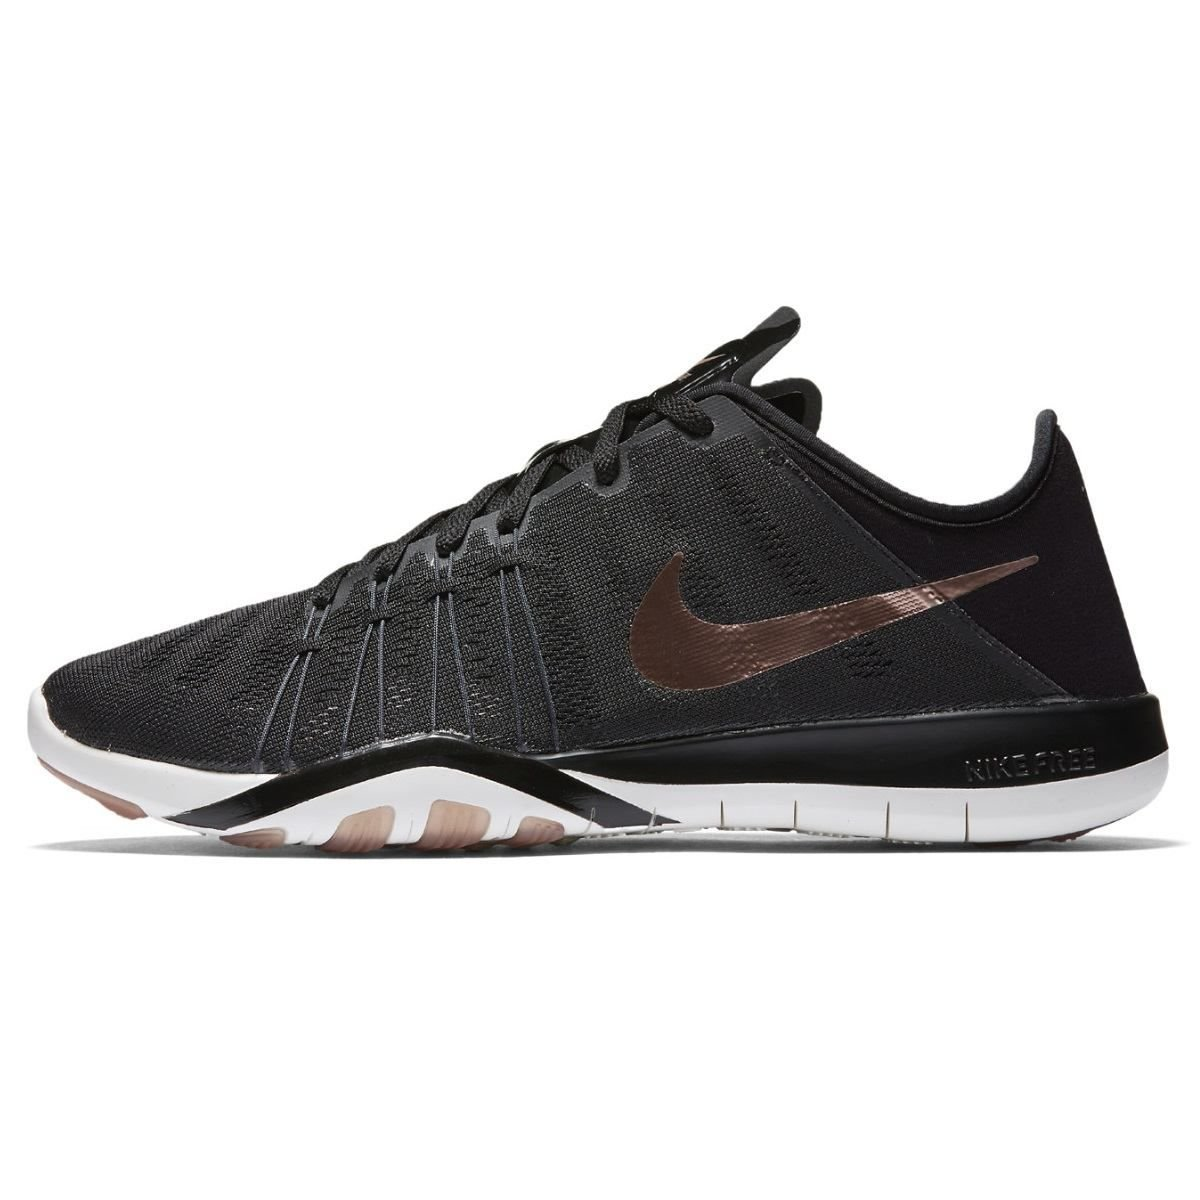 Nike Free TR 6 Women's Cross Training Shoes (9.5 B(M) US, Black/Metallic Red Bronze/Summit White/Dark Grey)